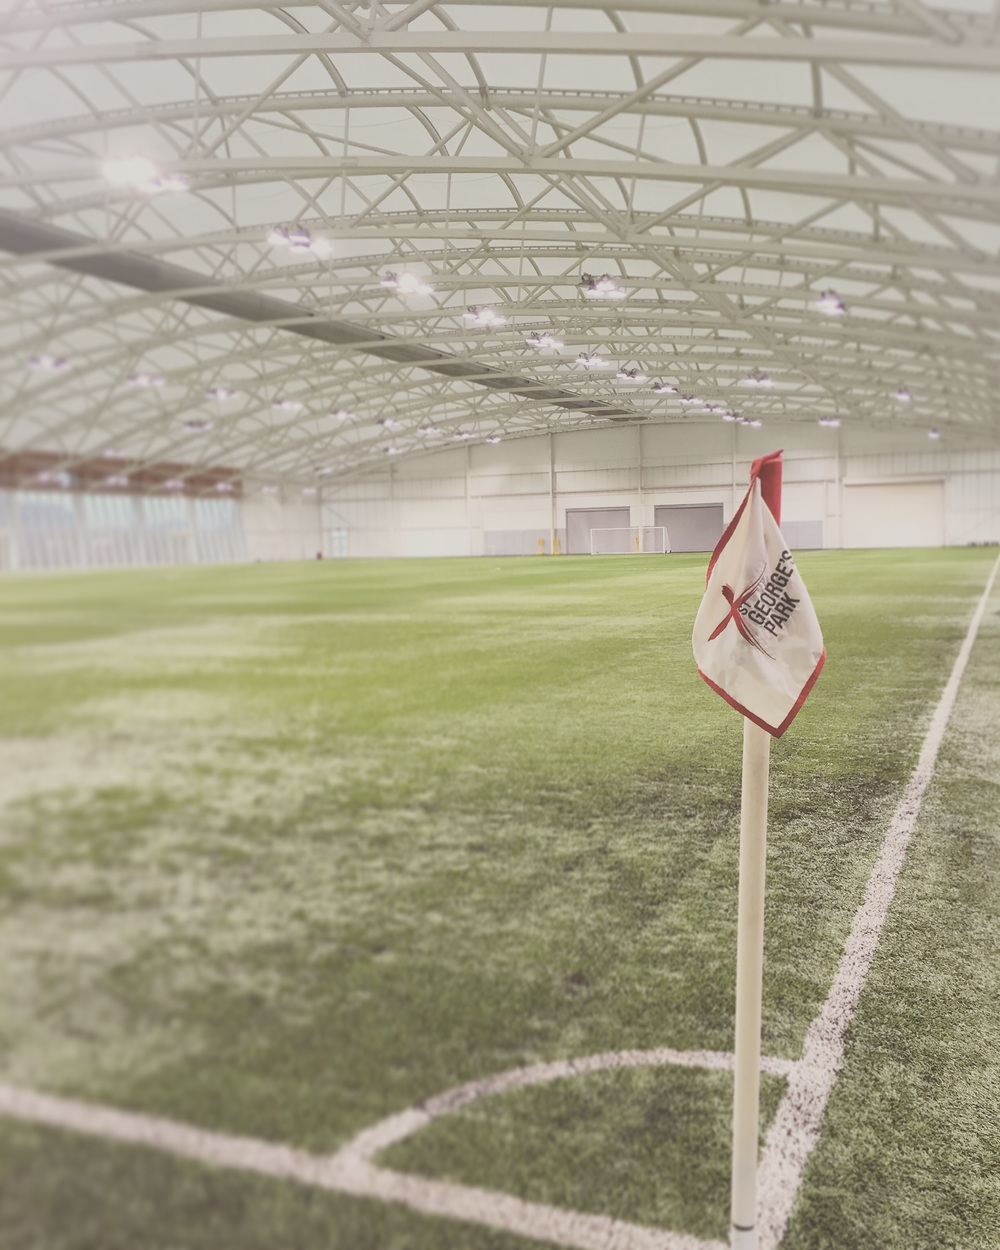 Image I took on February 13, 2016 of the 3G pitch - Instagram: Bobinho5